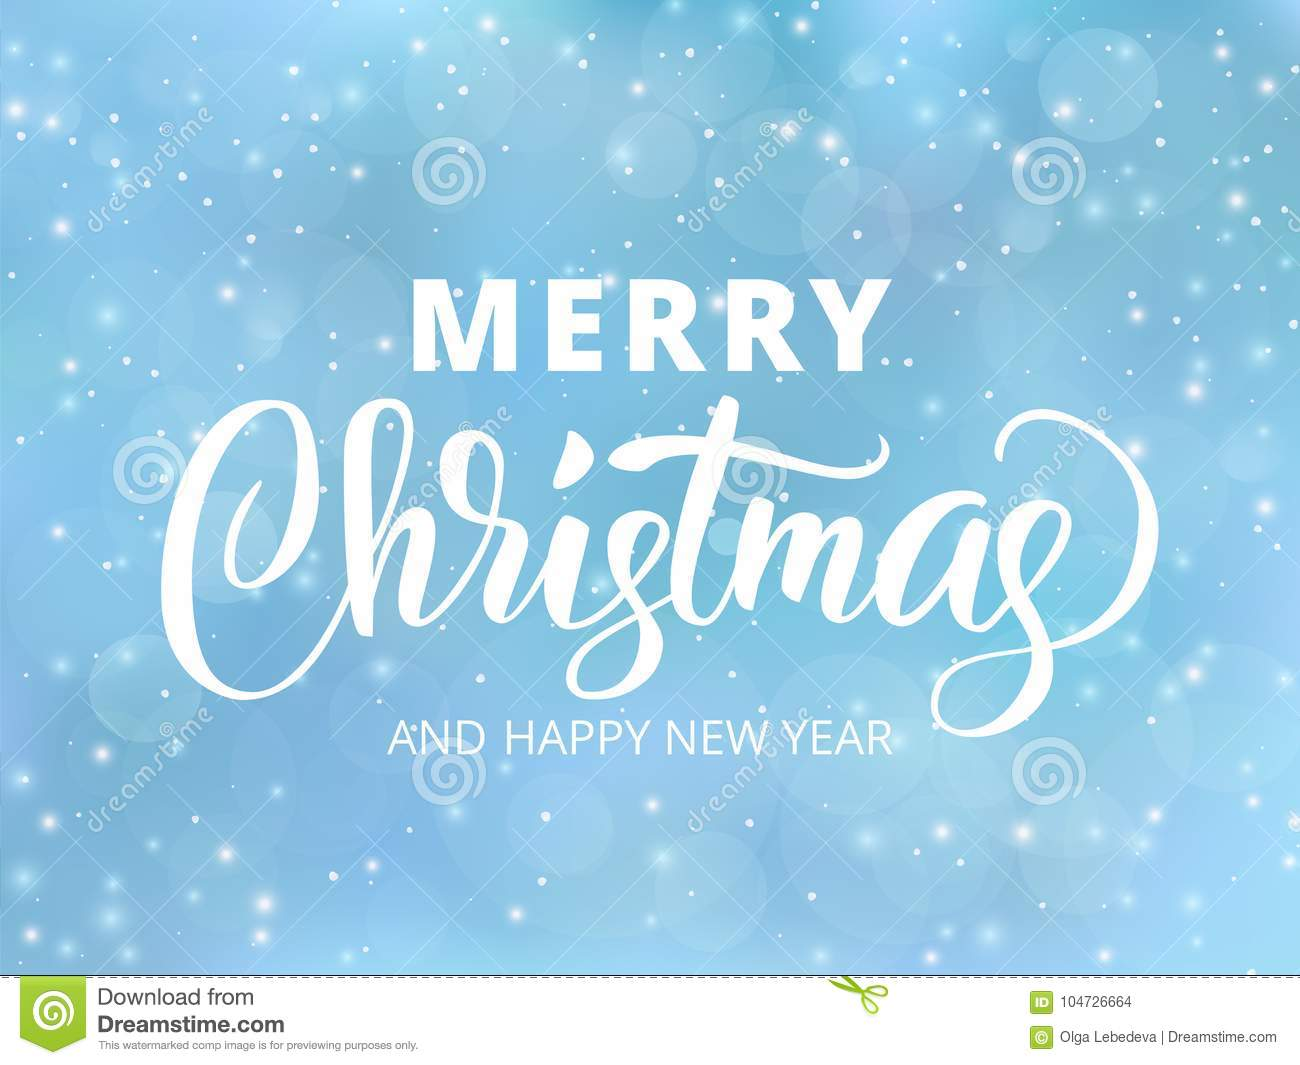 Merry christmas and happy new year text holiday greetings quote merry christmas and happy new year text holiday greetings quote blue blurred background with m4hsunfo